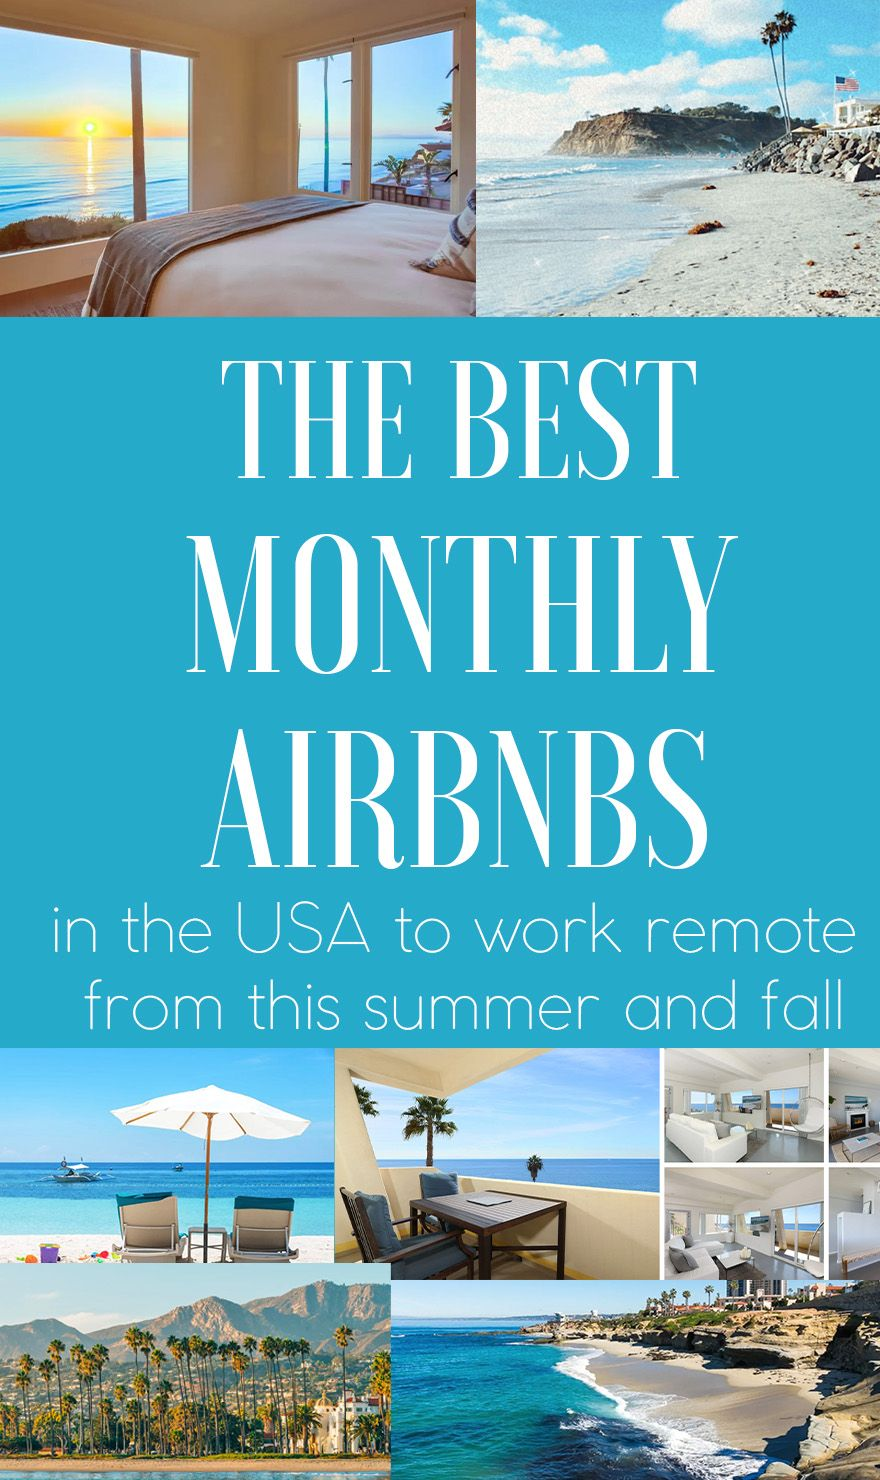 The Best Places In The Us To Airbnb For A Monthly Rental Or Remote Working Vacation In 2021 Jetsetchristina Magical Vacations Travel Remote Work Miami Travel Guide